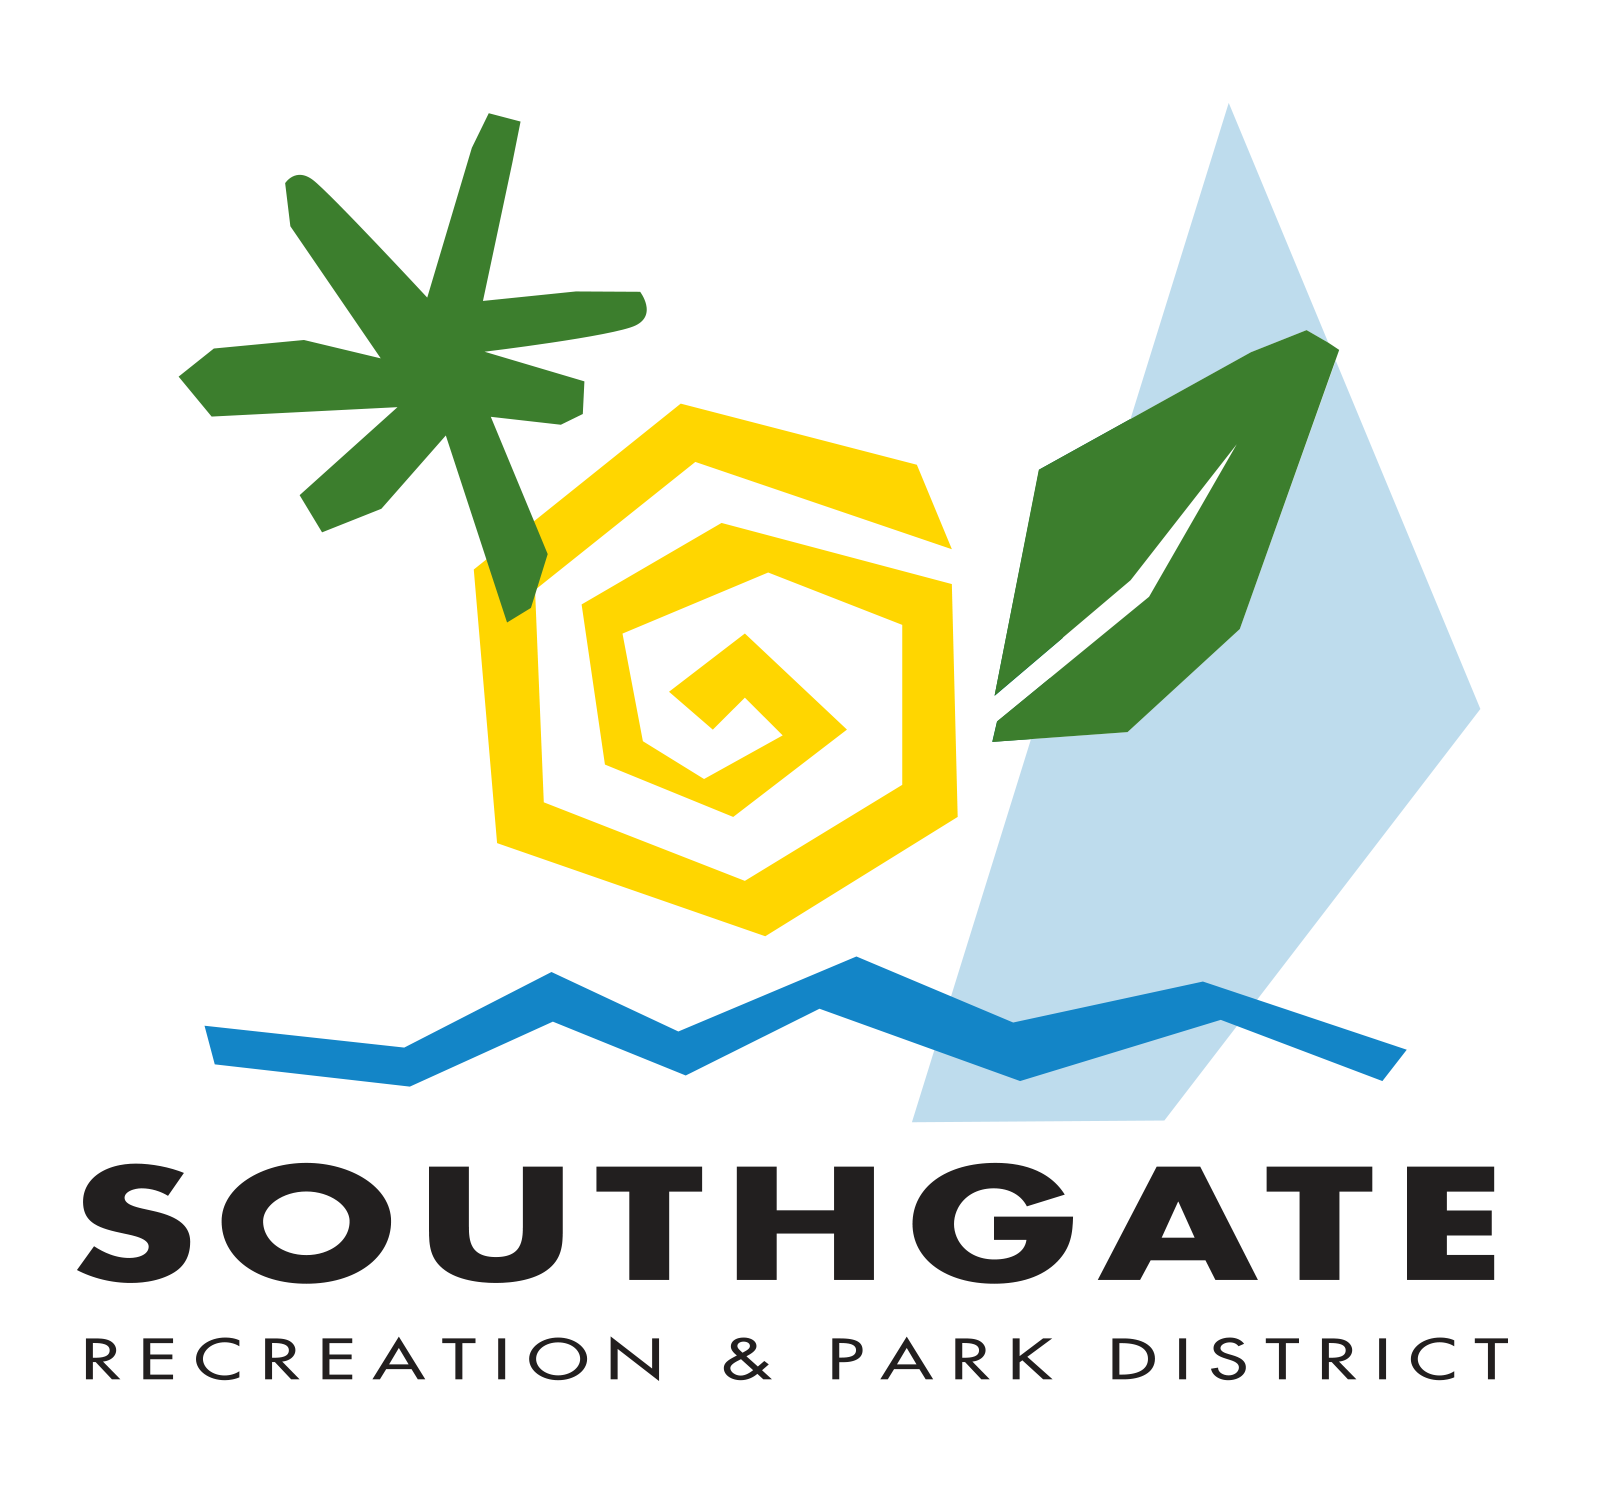 Southgate Recreation & Park District